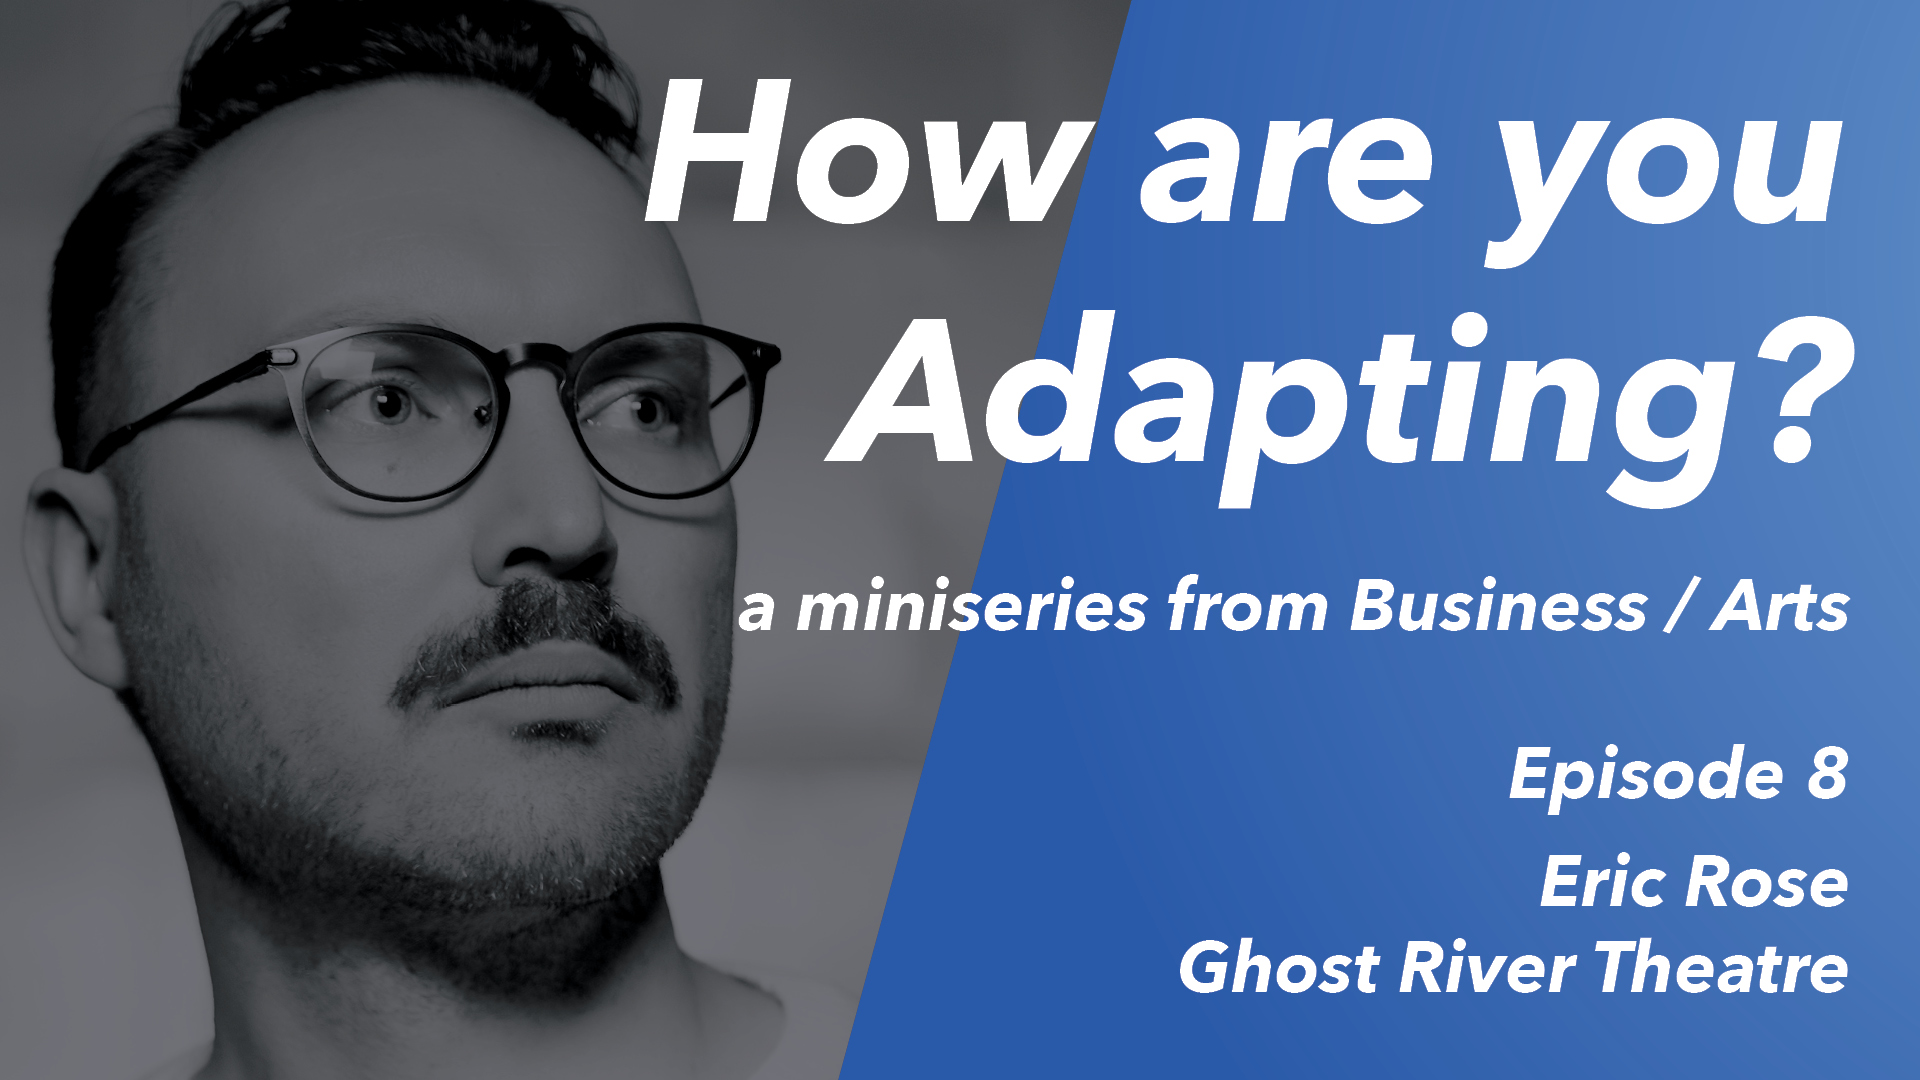 How are you Adapting? Ep 8: Eric Rose (Ghost River Theatre)